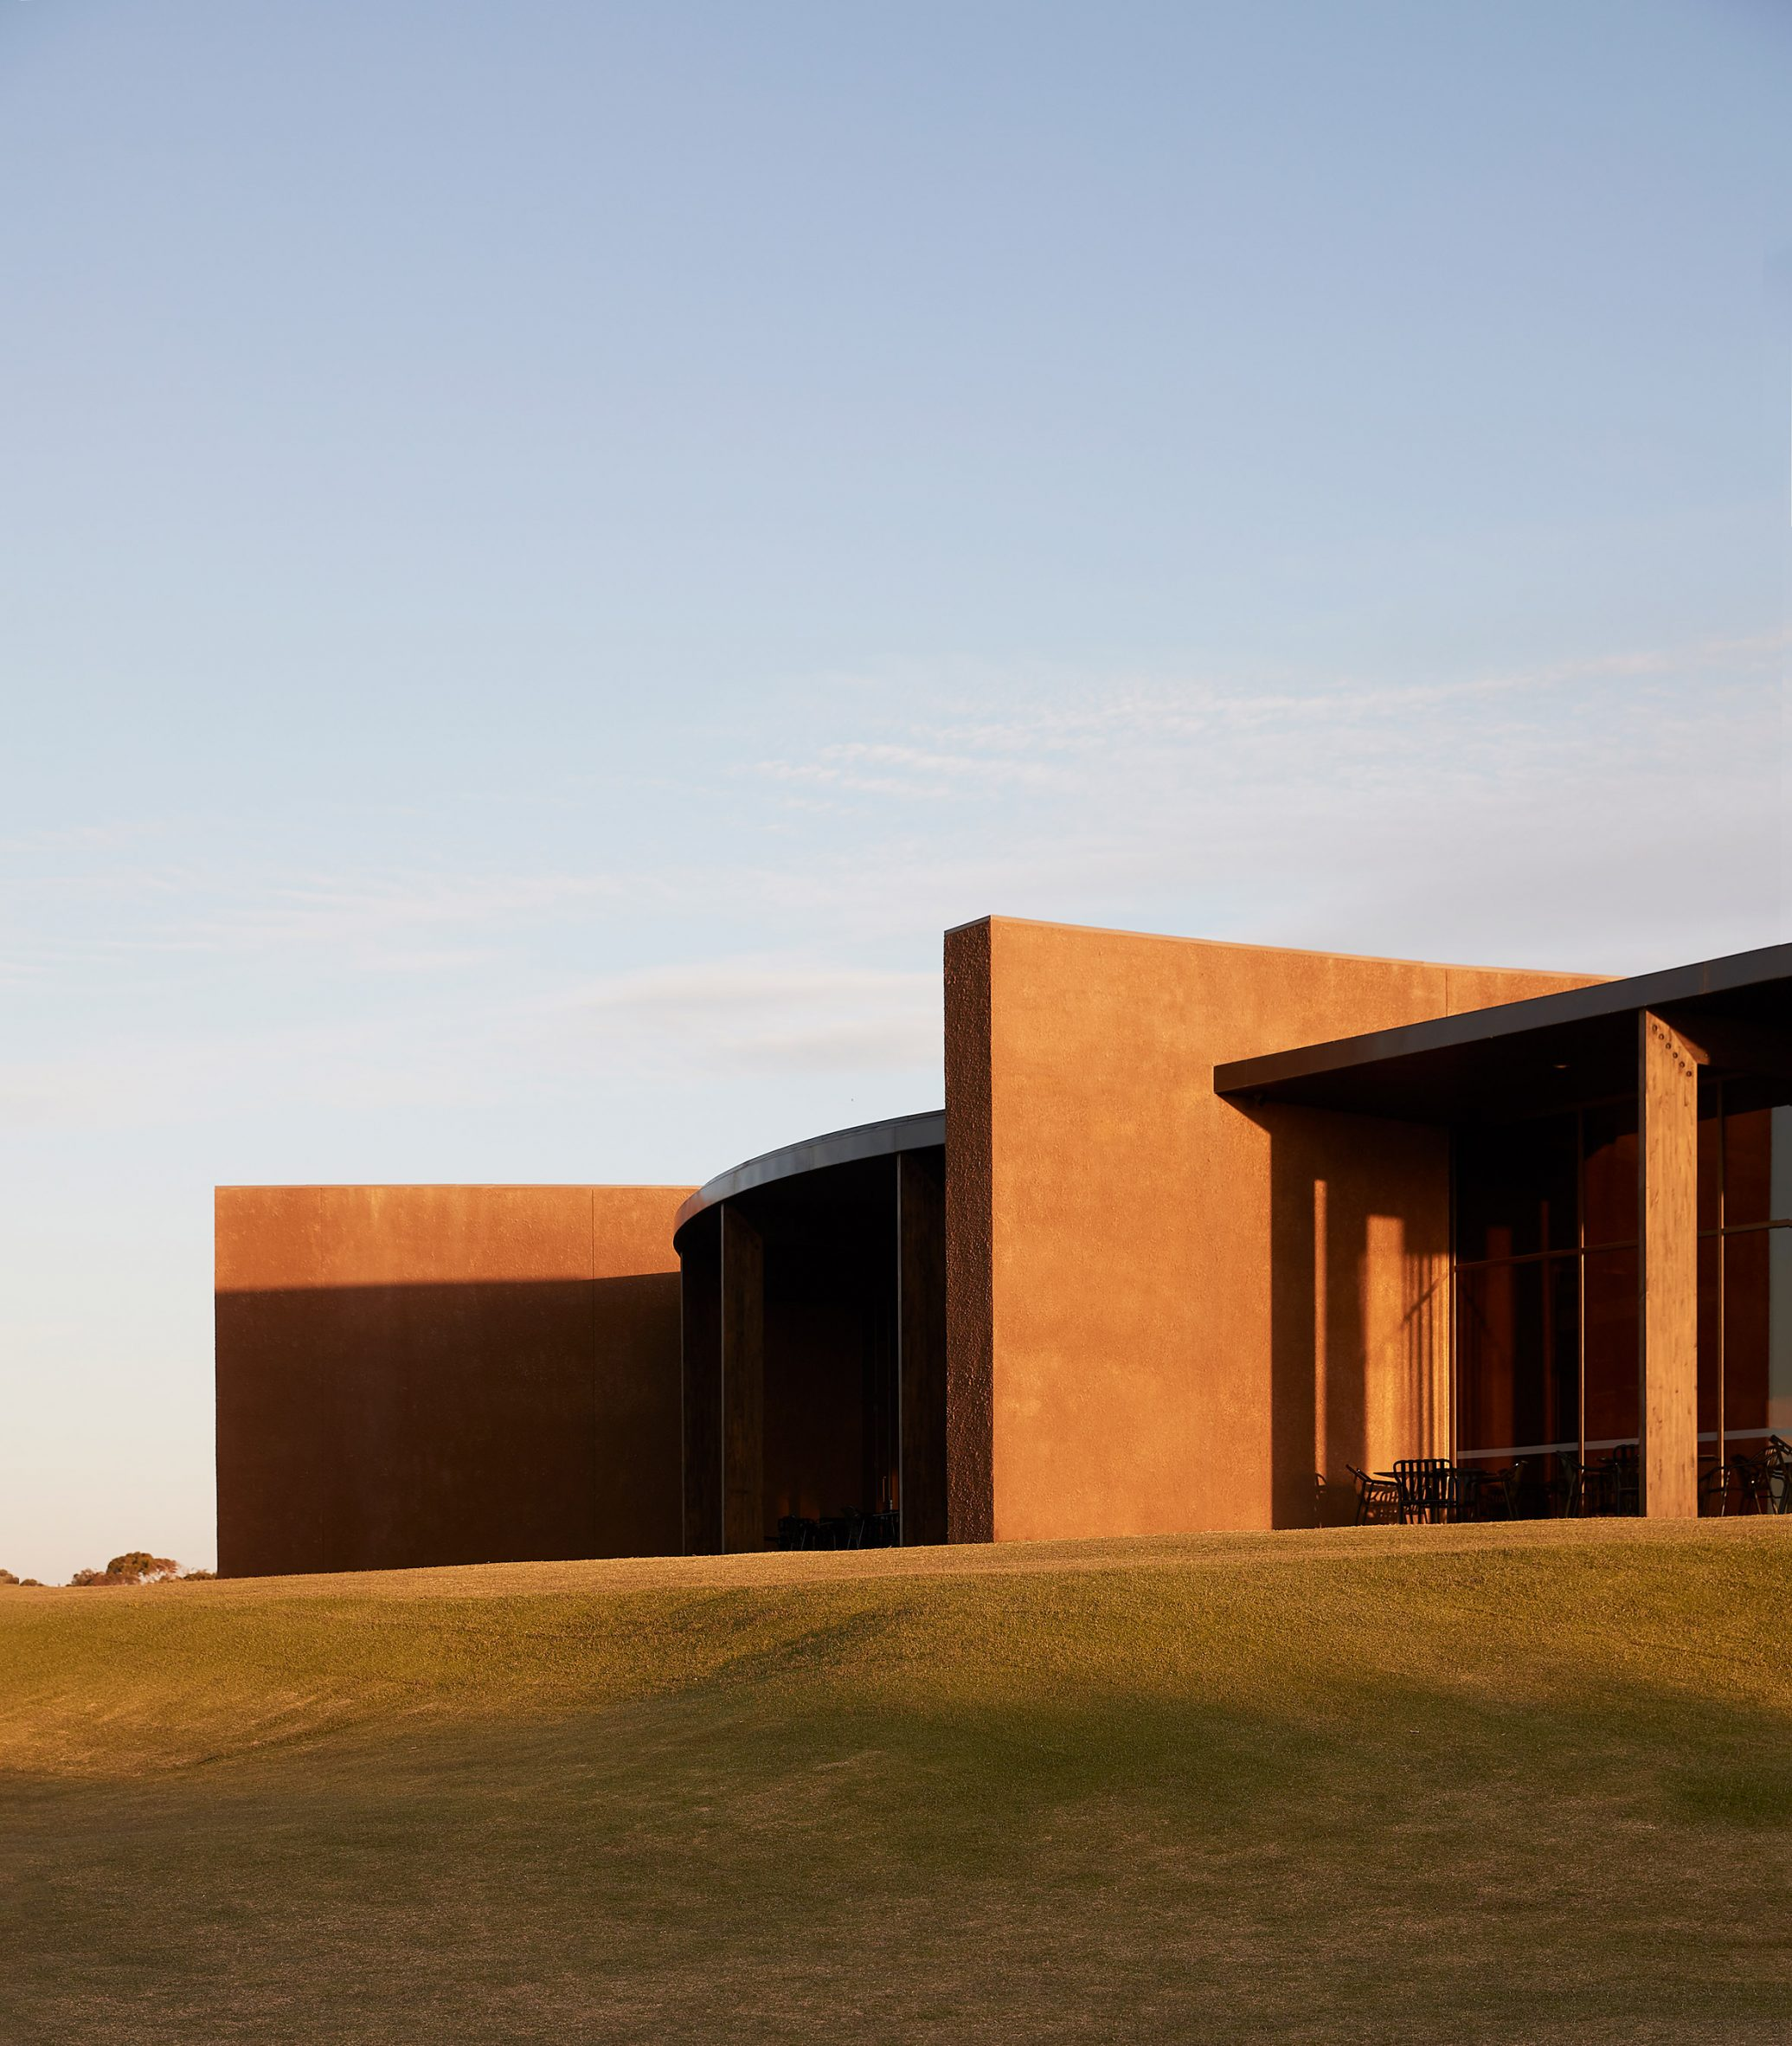 Lonsdale Links golf club uses raw and textural materials